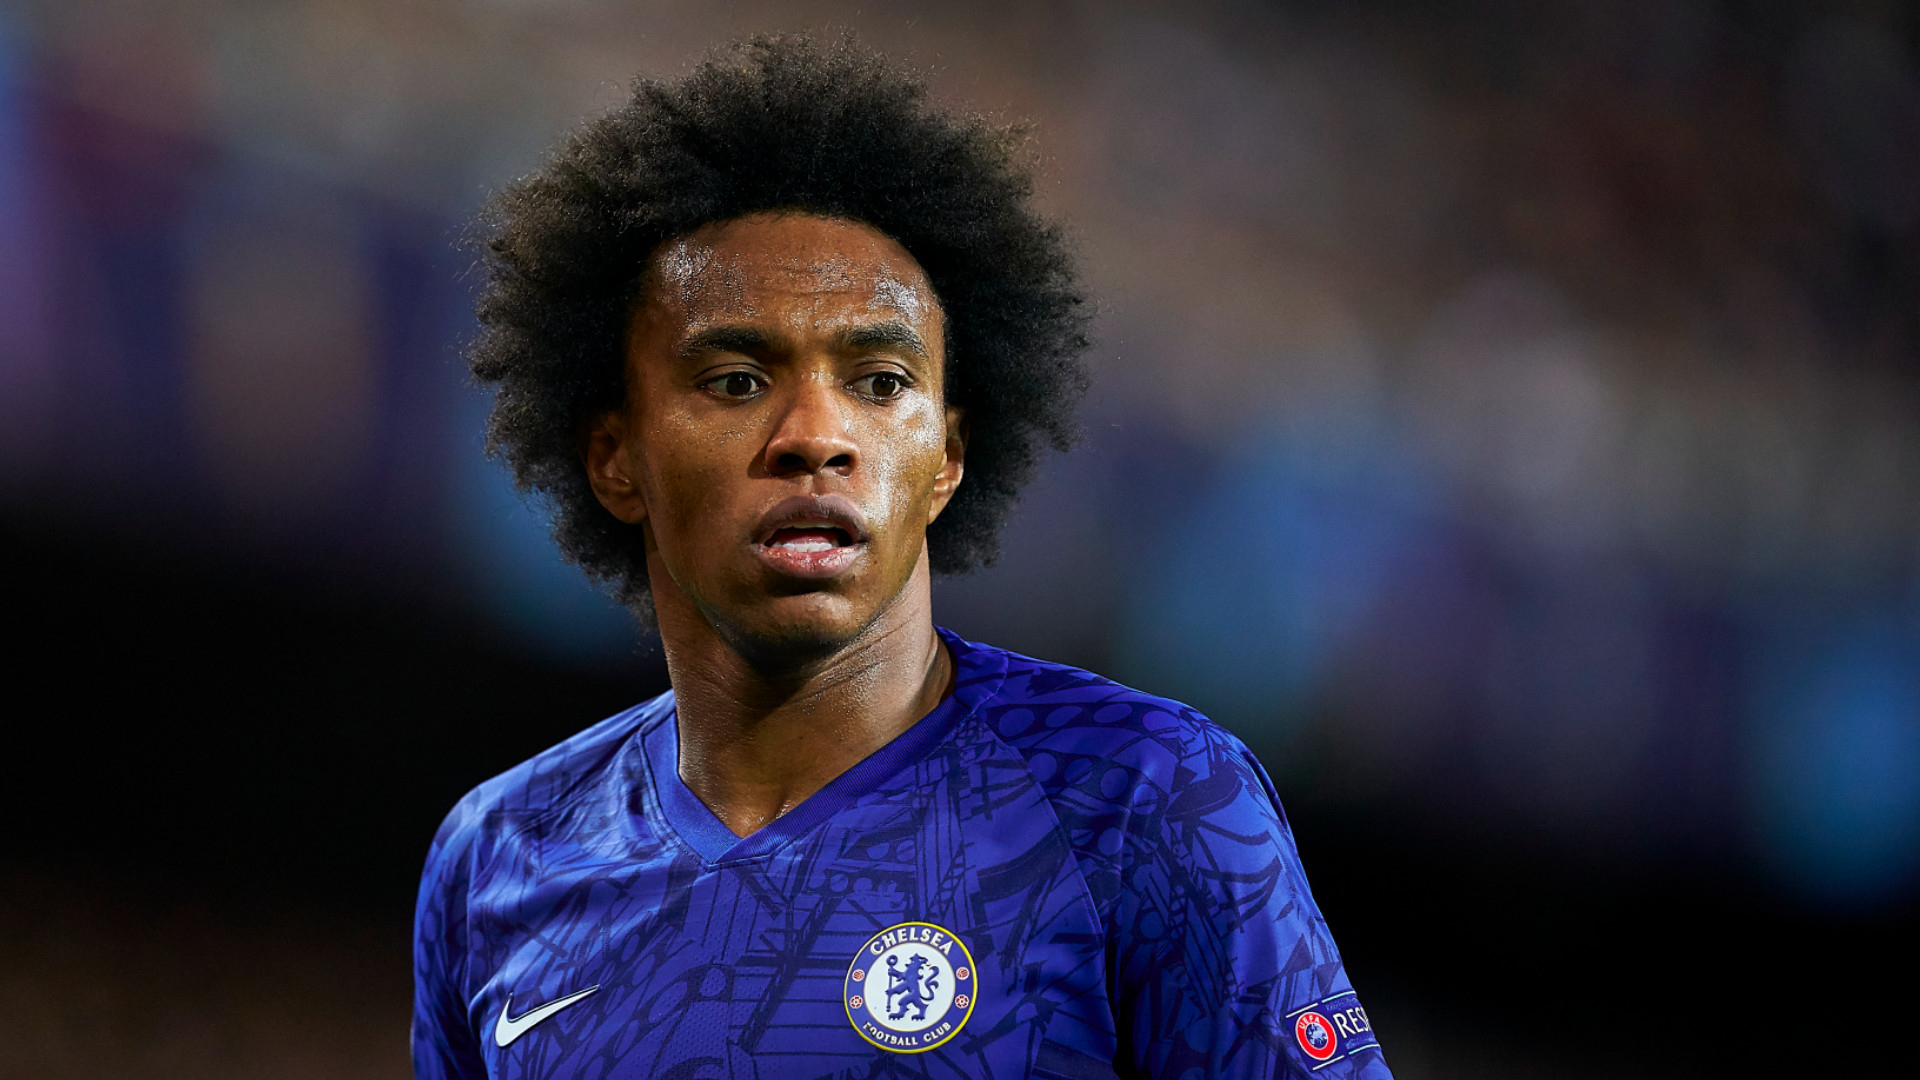 'It would be fine to move to a rival club' - Chelsea's Willian opens door to Arsenal or Tottenham move